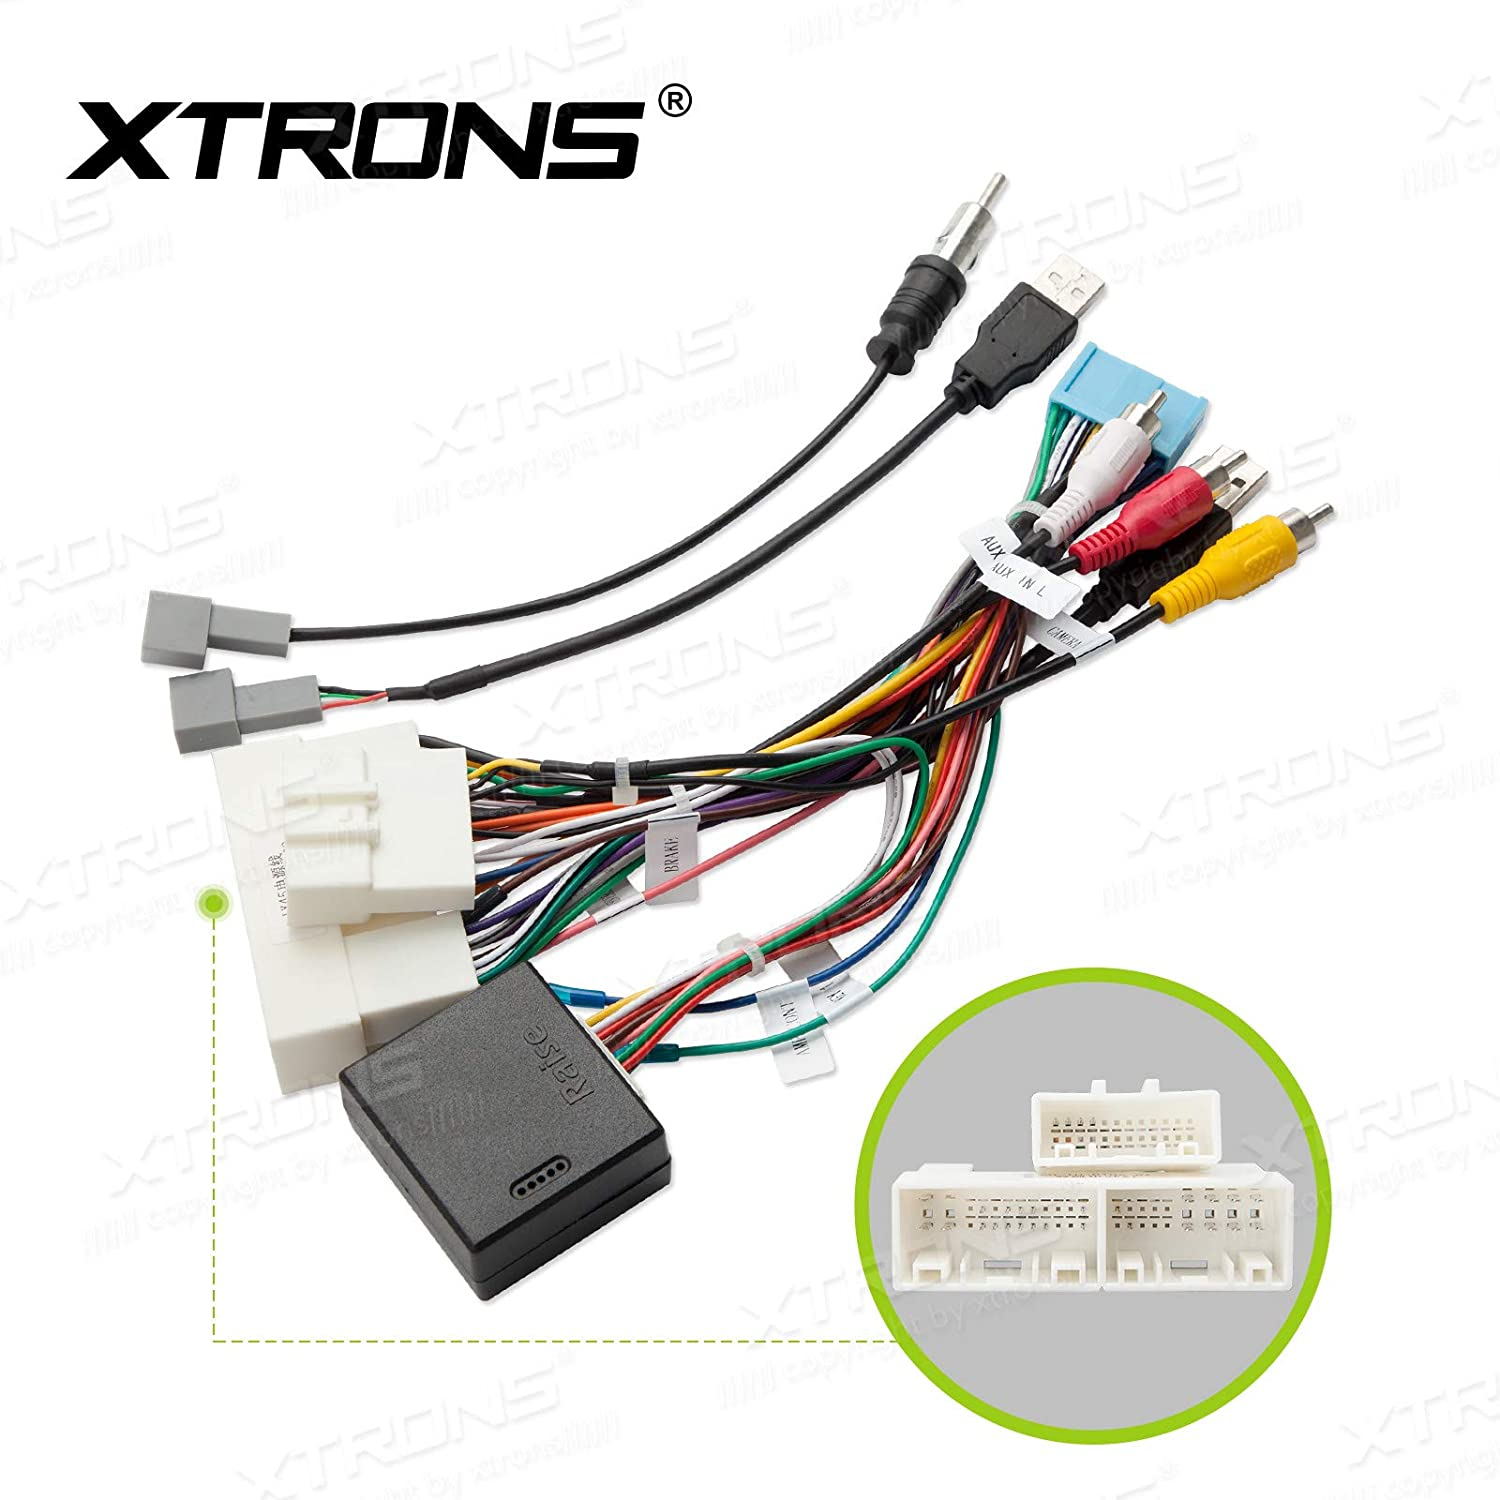 Xtrons Car Dvd Player Wiring Diagram. . Wiring Diagram on